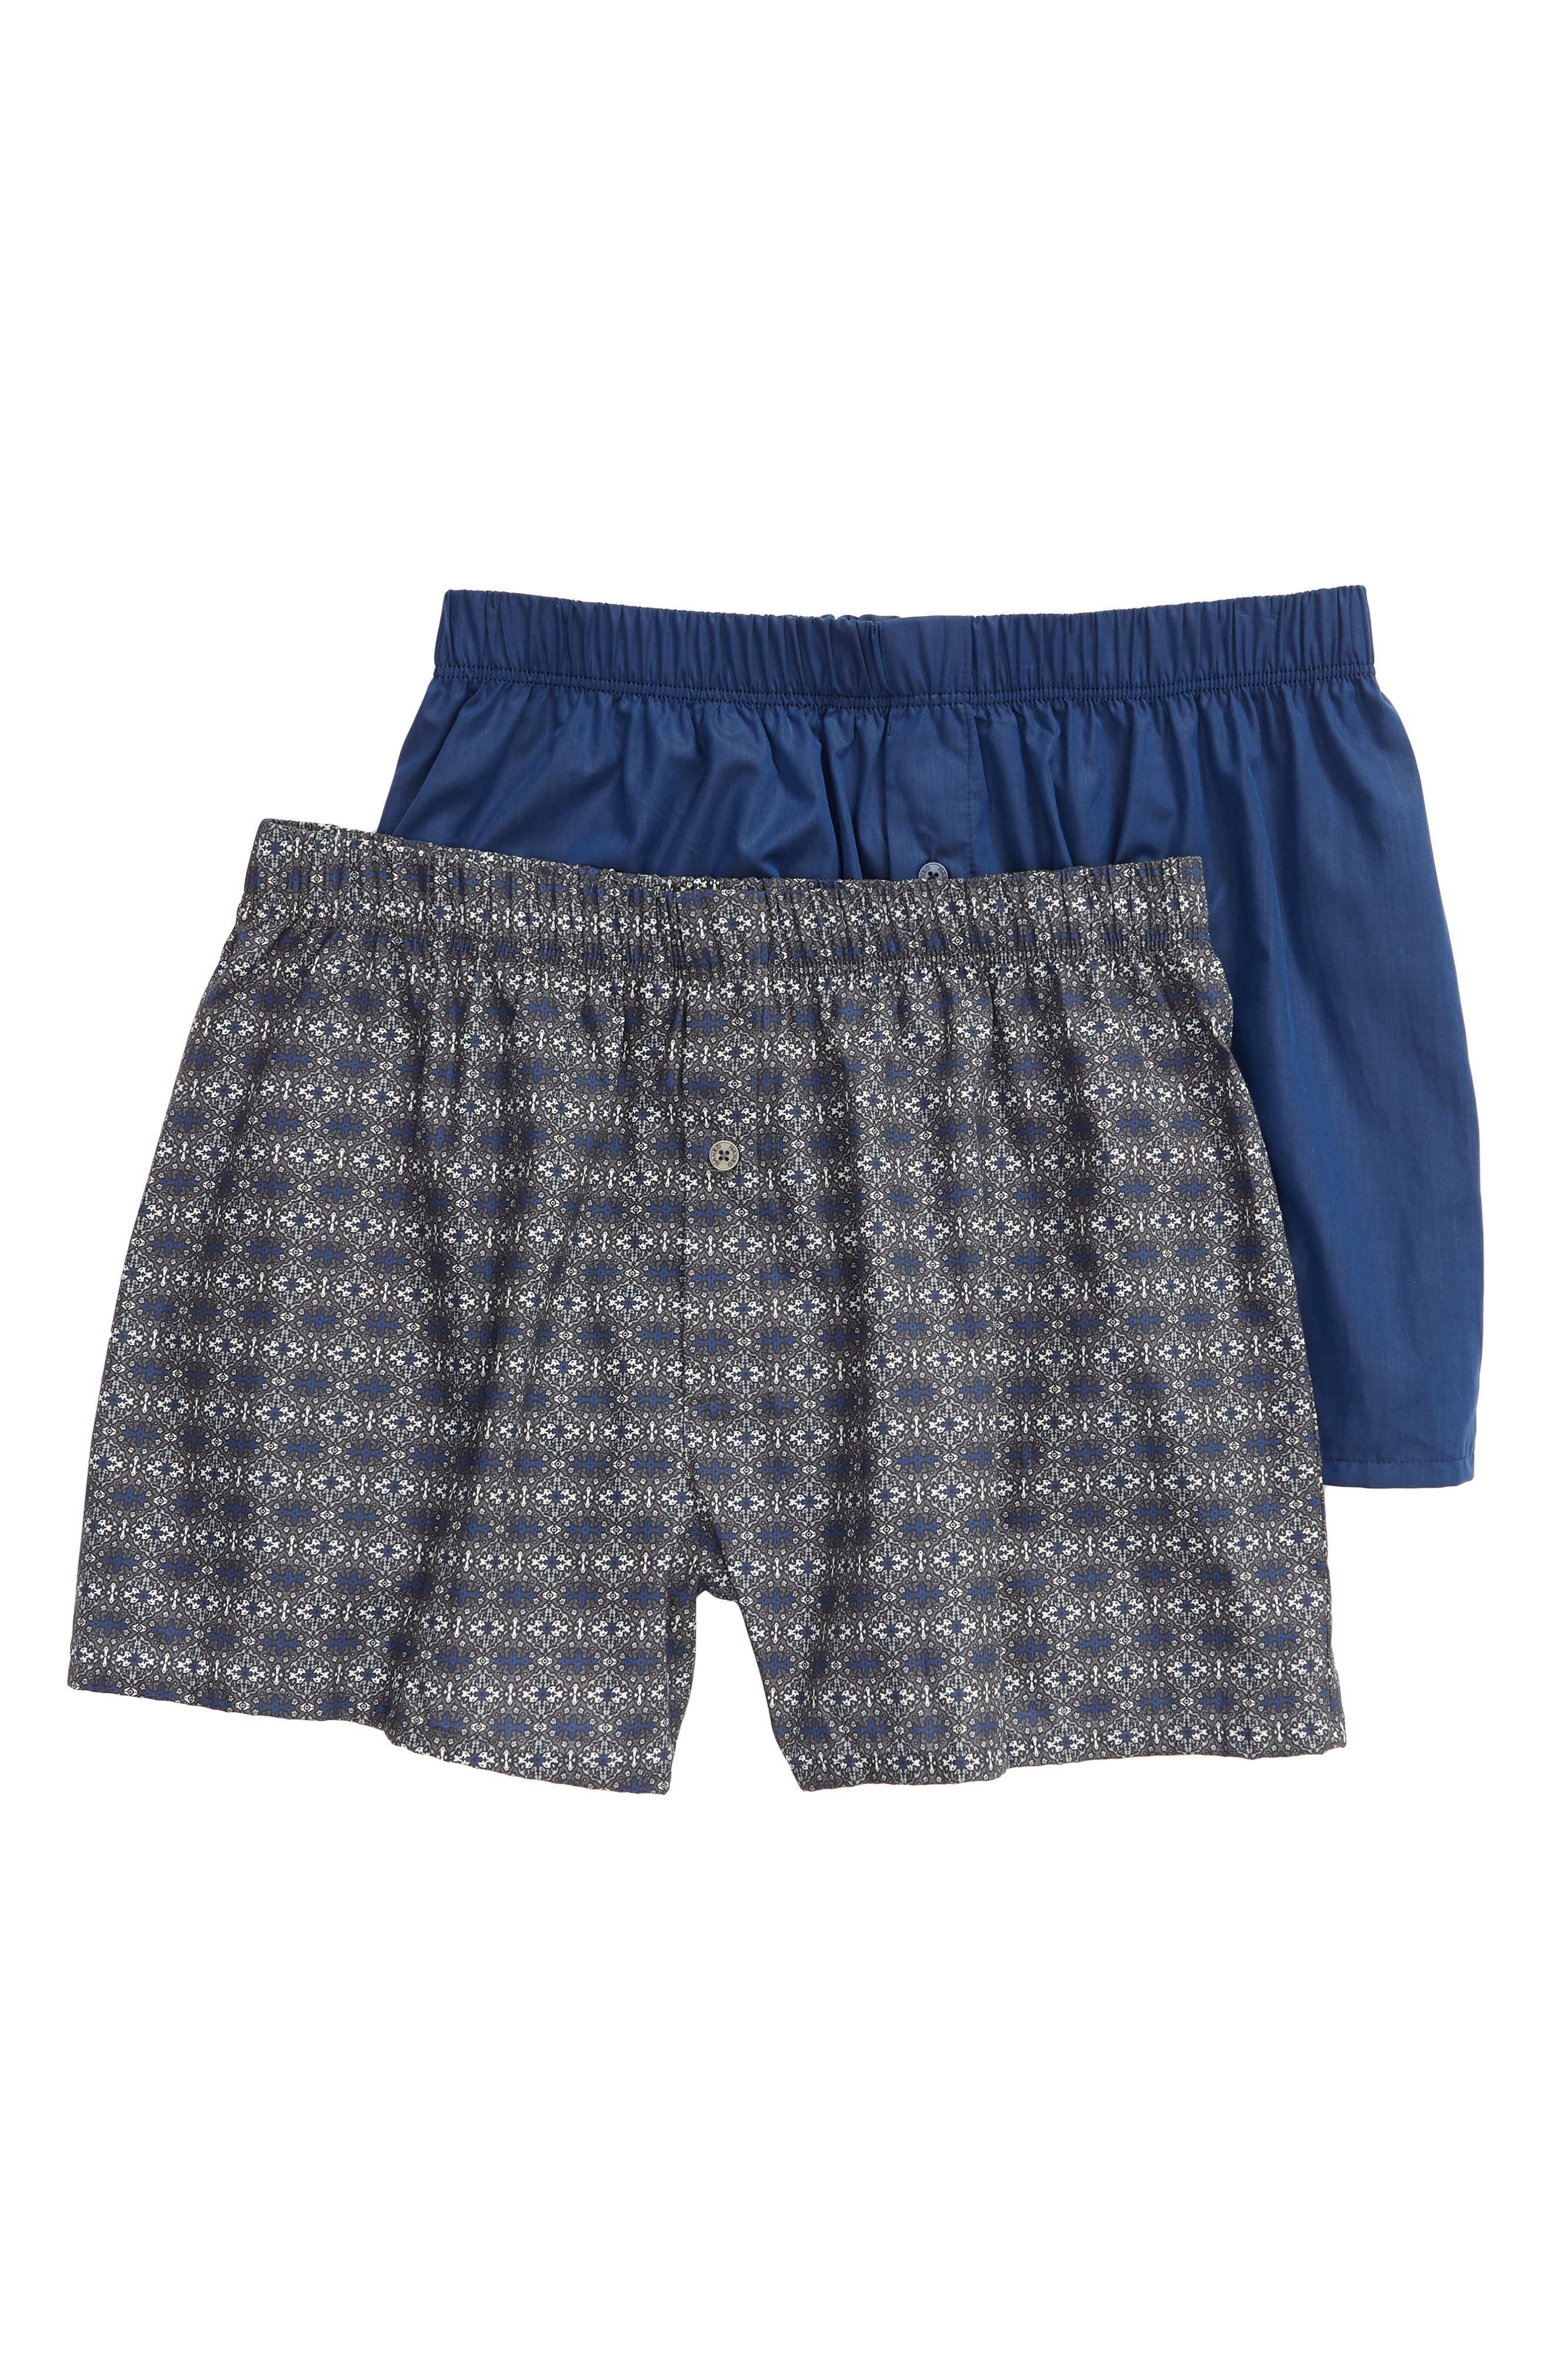 2-Pack Fancy Woven Boxers,                         Main,                         color, MINIMAL ORNAMENT/ ROYAL BLUE